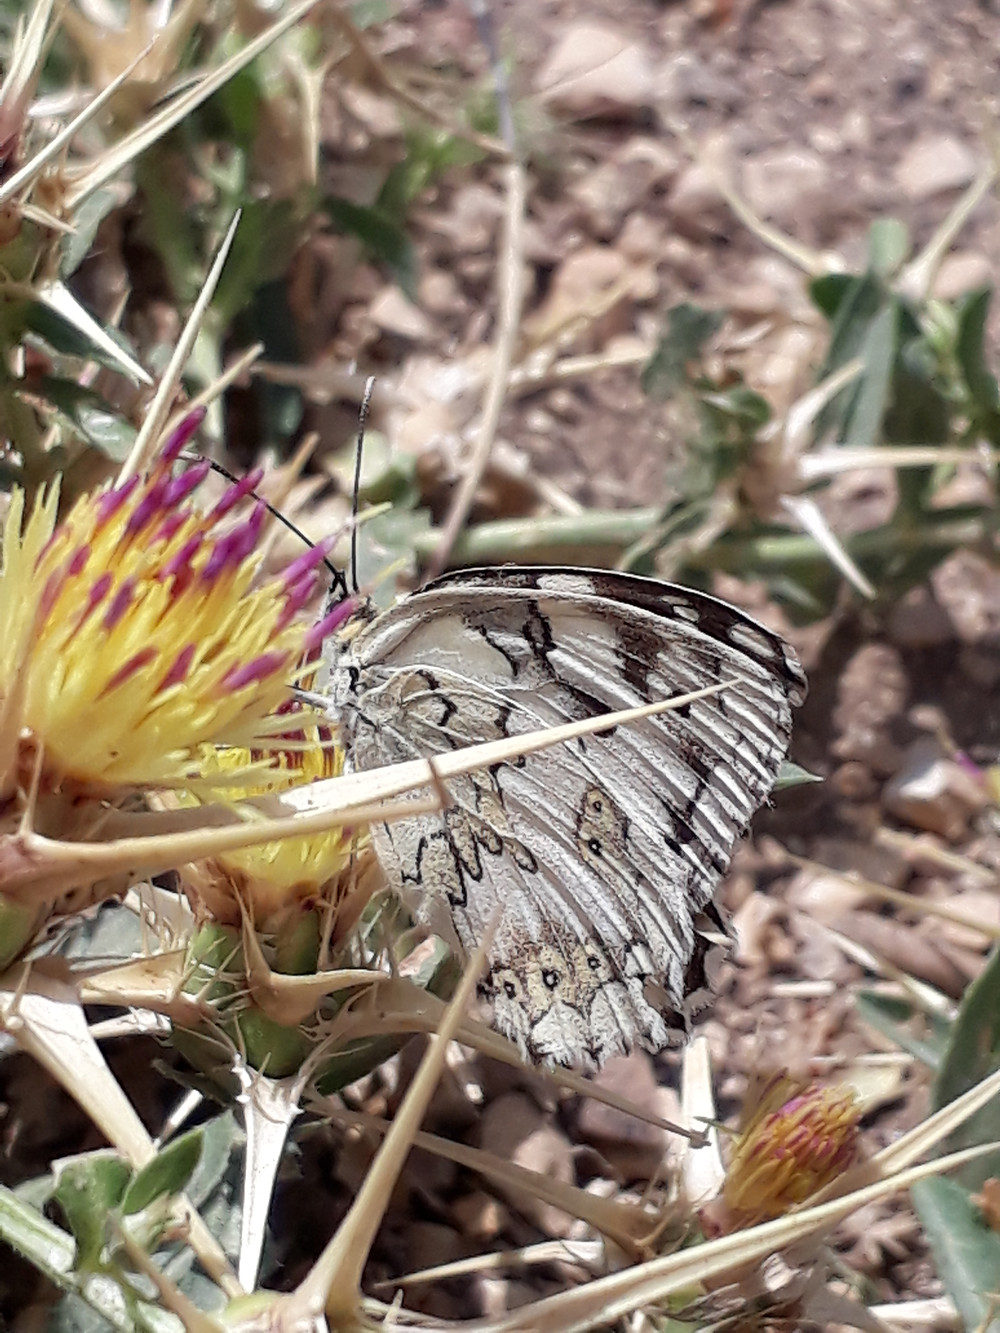 A white butterfly with neat black markings sits, wings almost completely closed nectaring from a purple-tipped yellow flower, surrounded by thorns of spiny foliage